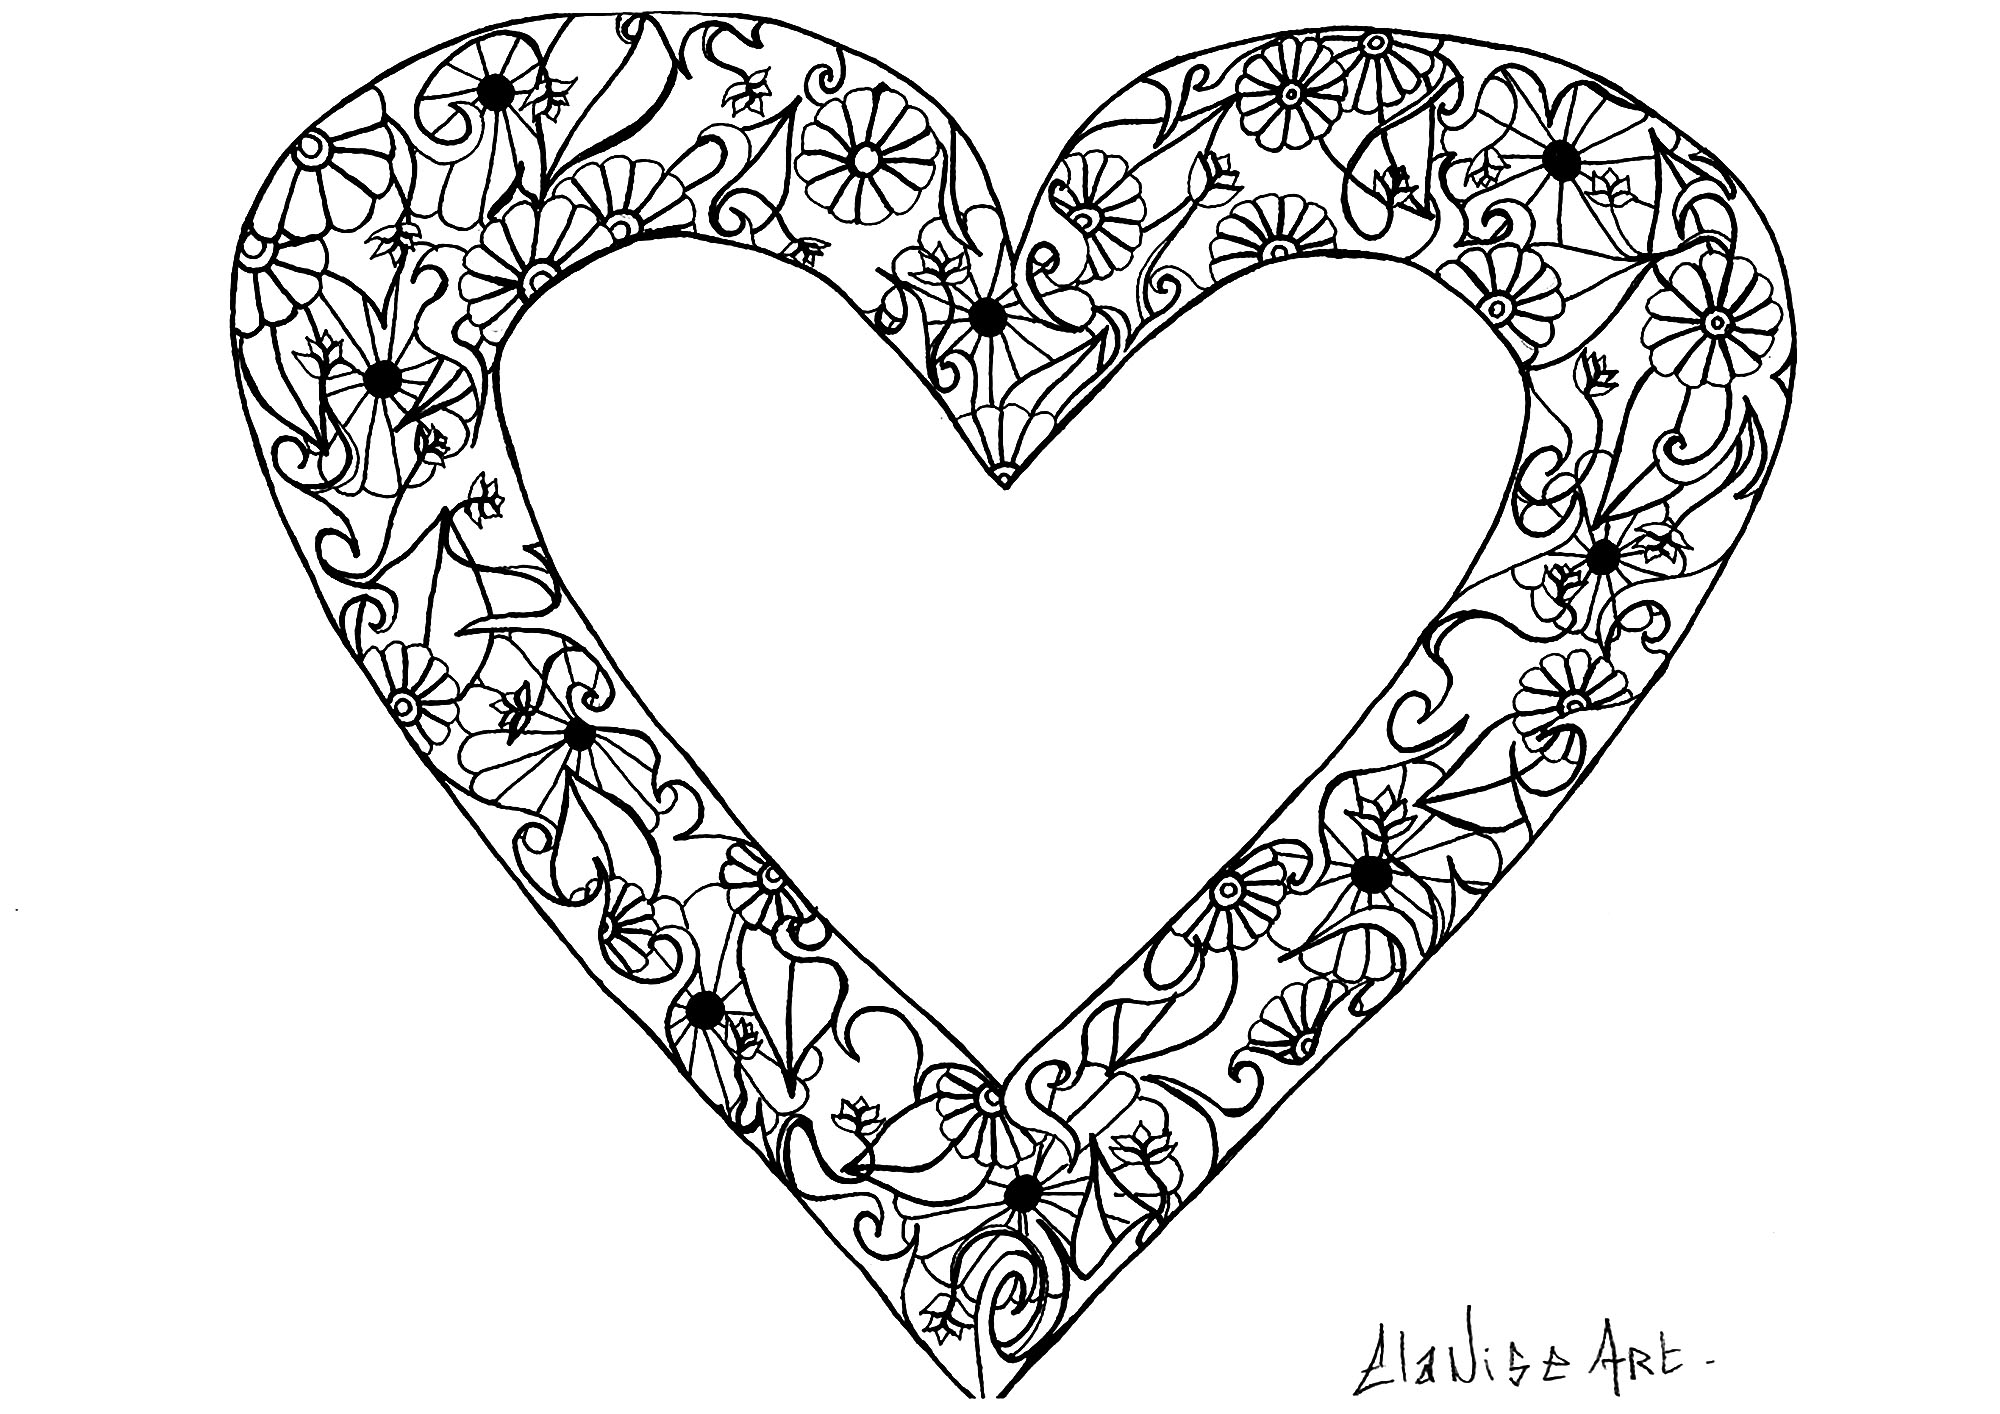 Cool drawing with an heart containing simple flowers and leaves